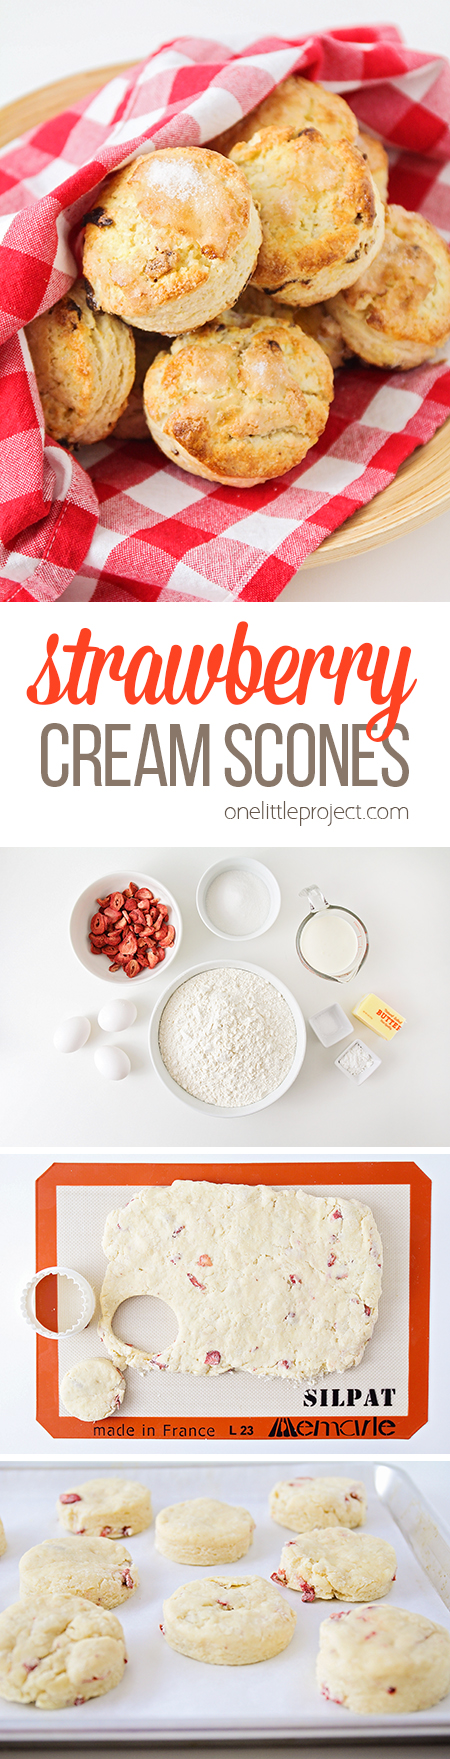 These sweet and simple strawberry cream scones are perfect for breakfast or dessert! They're an elegant and easy to make treat that everyone will love!